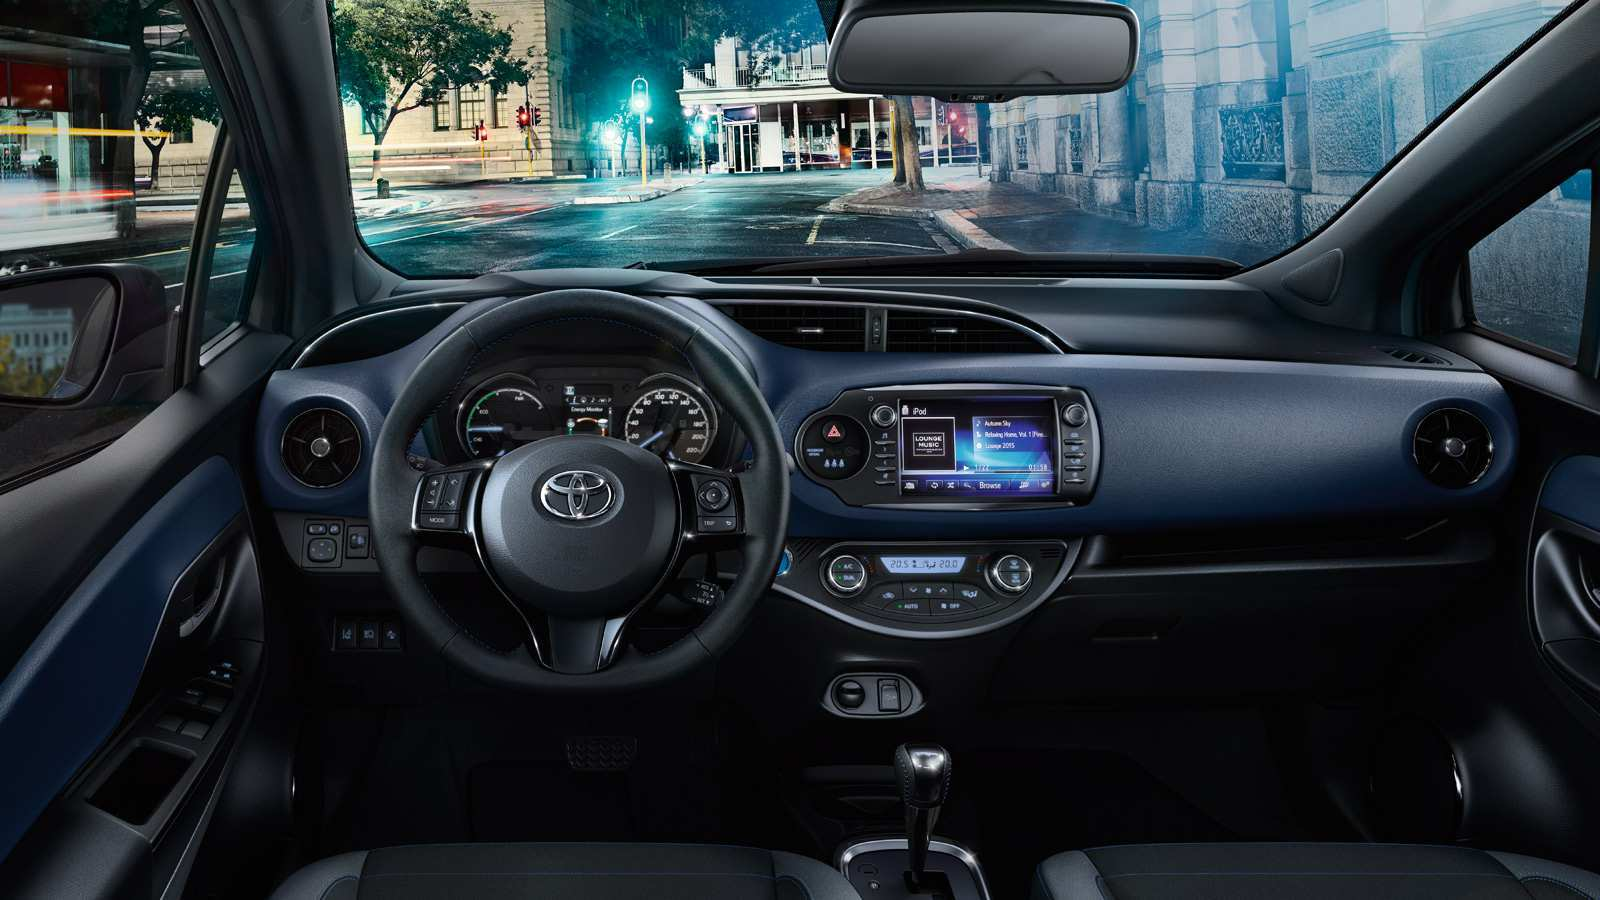 36 All New Toyota Yaris 2019 Interior Prices